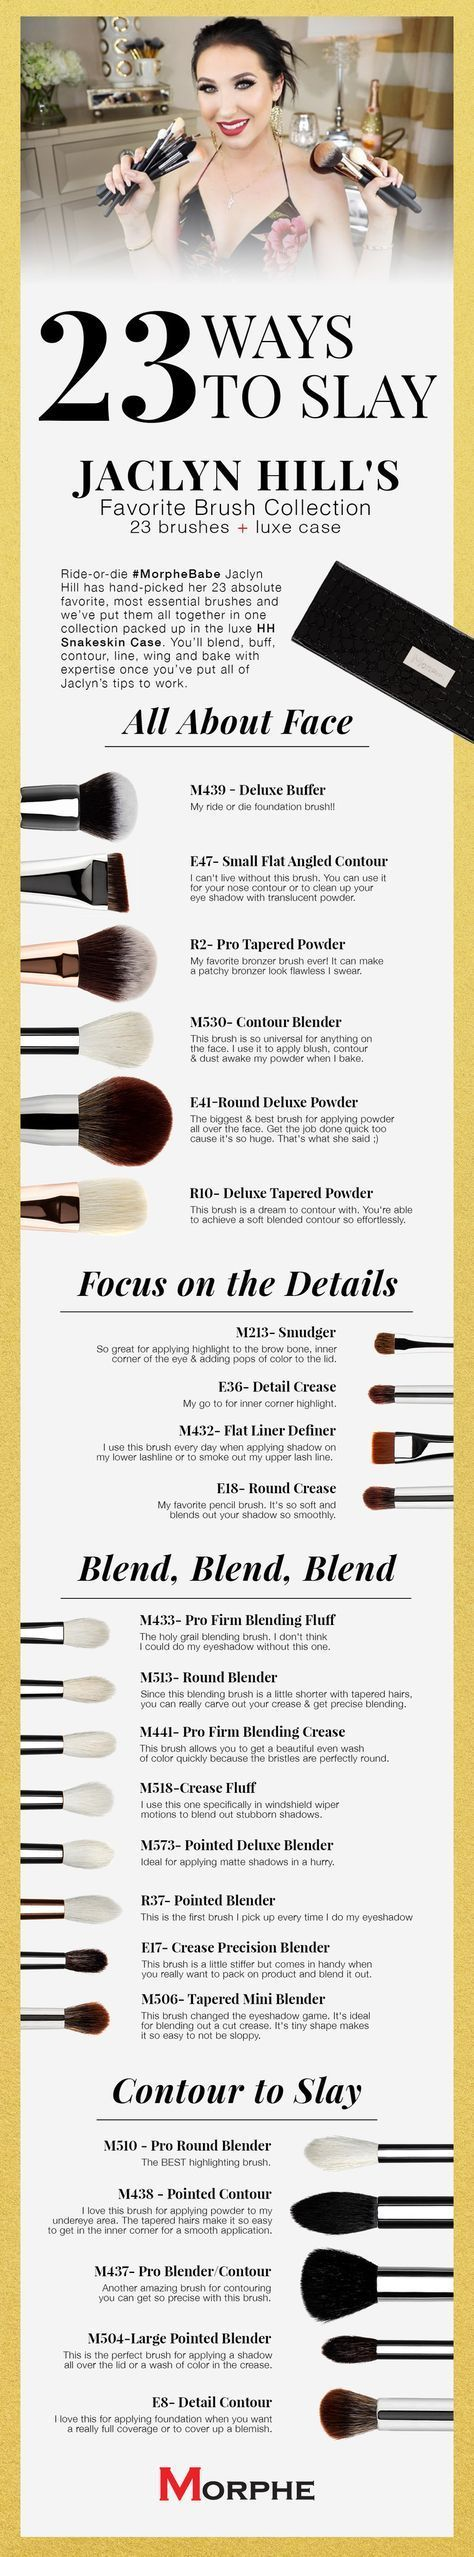 JACLYN HILL'S FAVORITE BRUSH COLLECTION Morphe Brushes